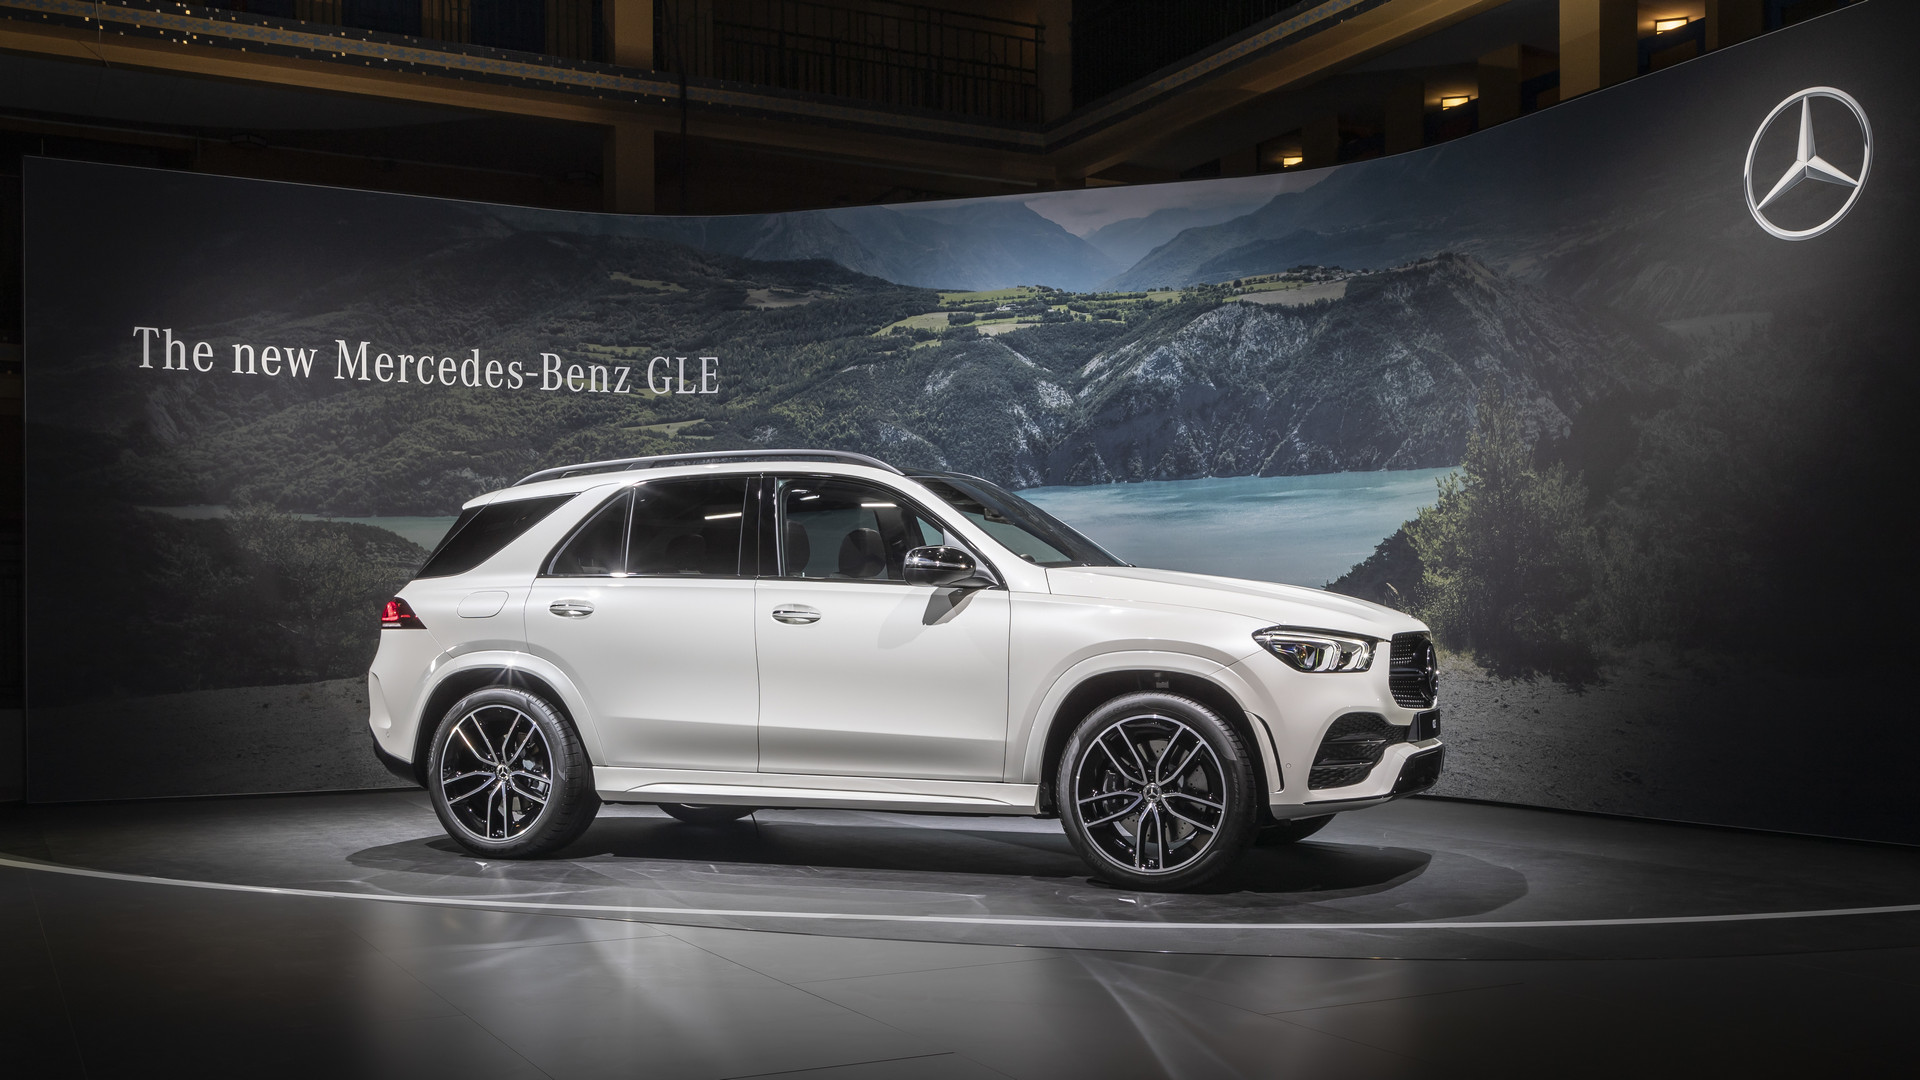 2019 Mercedes-Benz GLE 450 - Side View